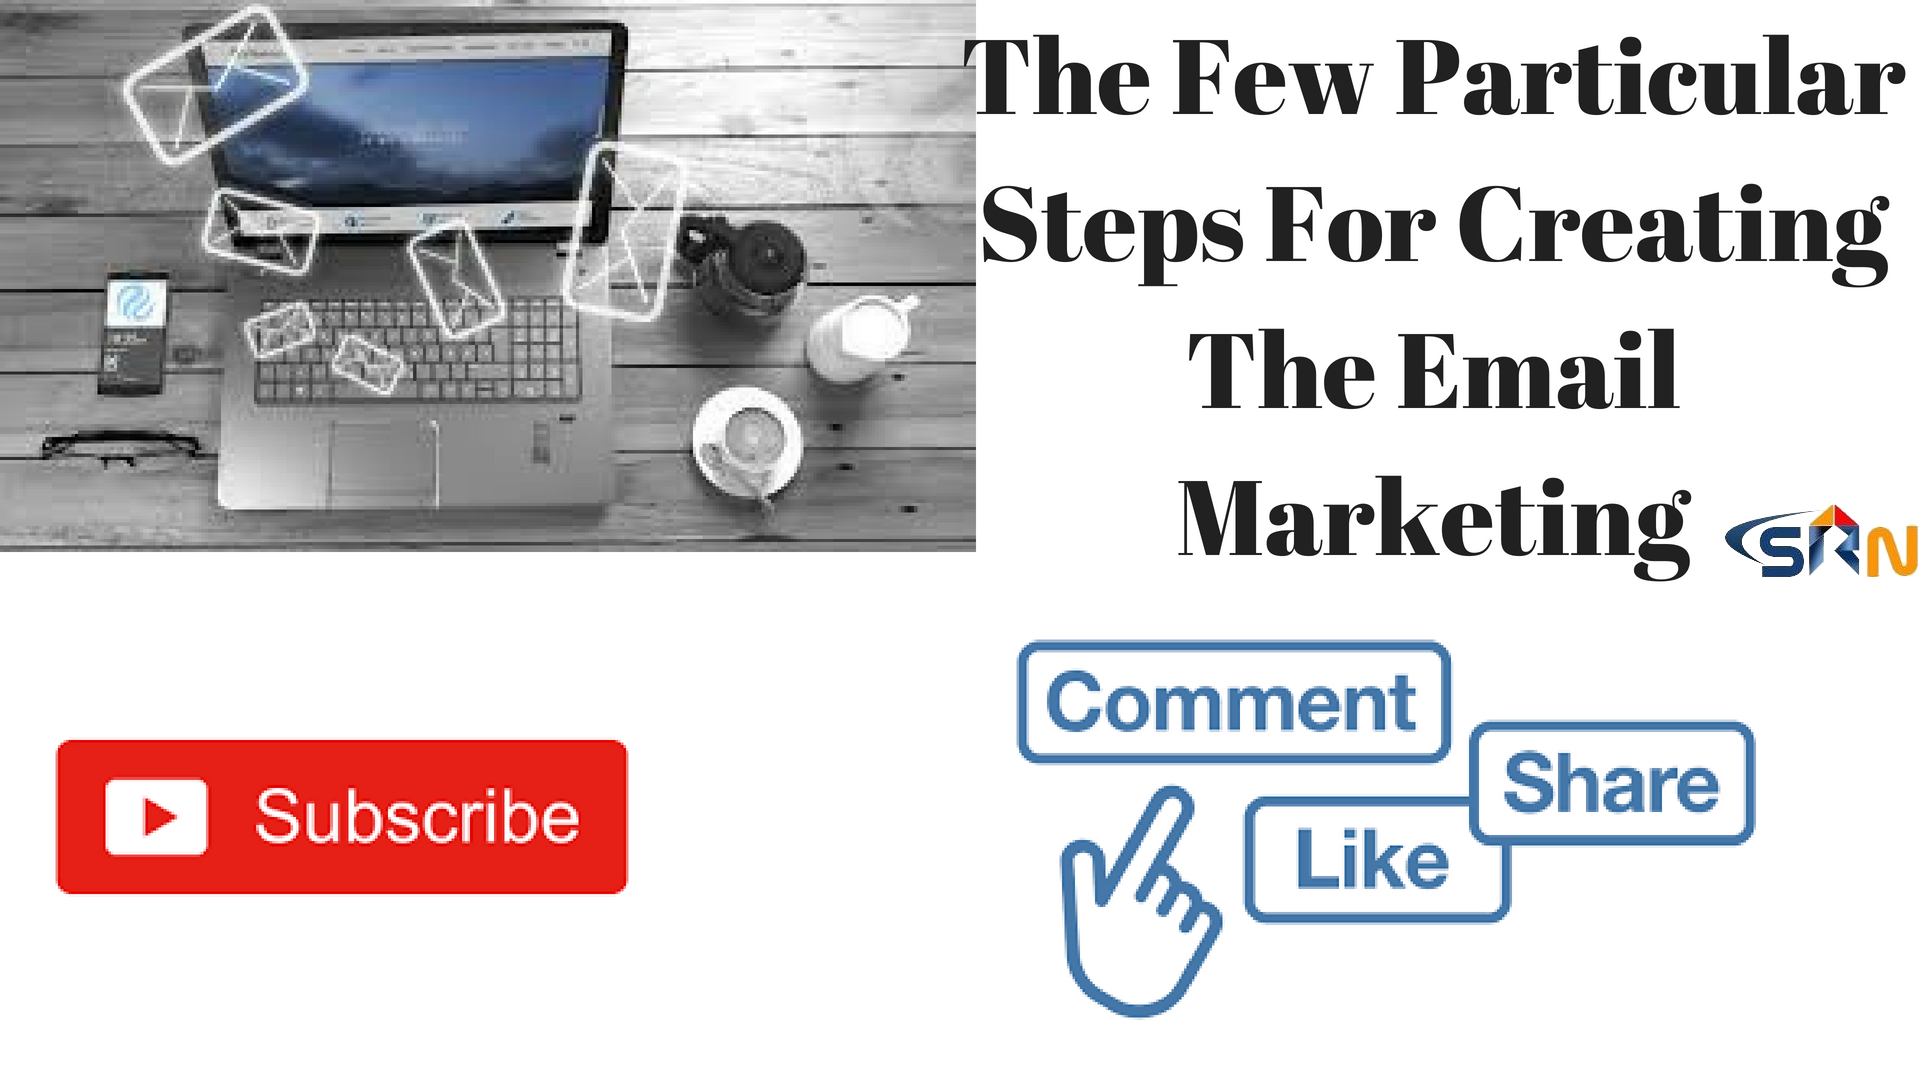 The Few Particular Steps For Creating The Email Marketing